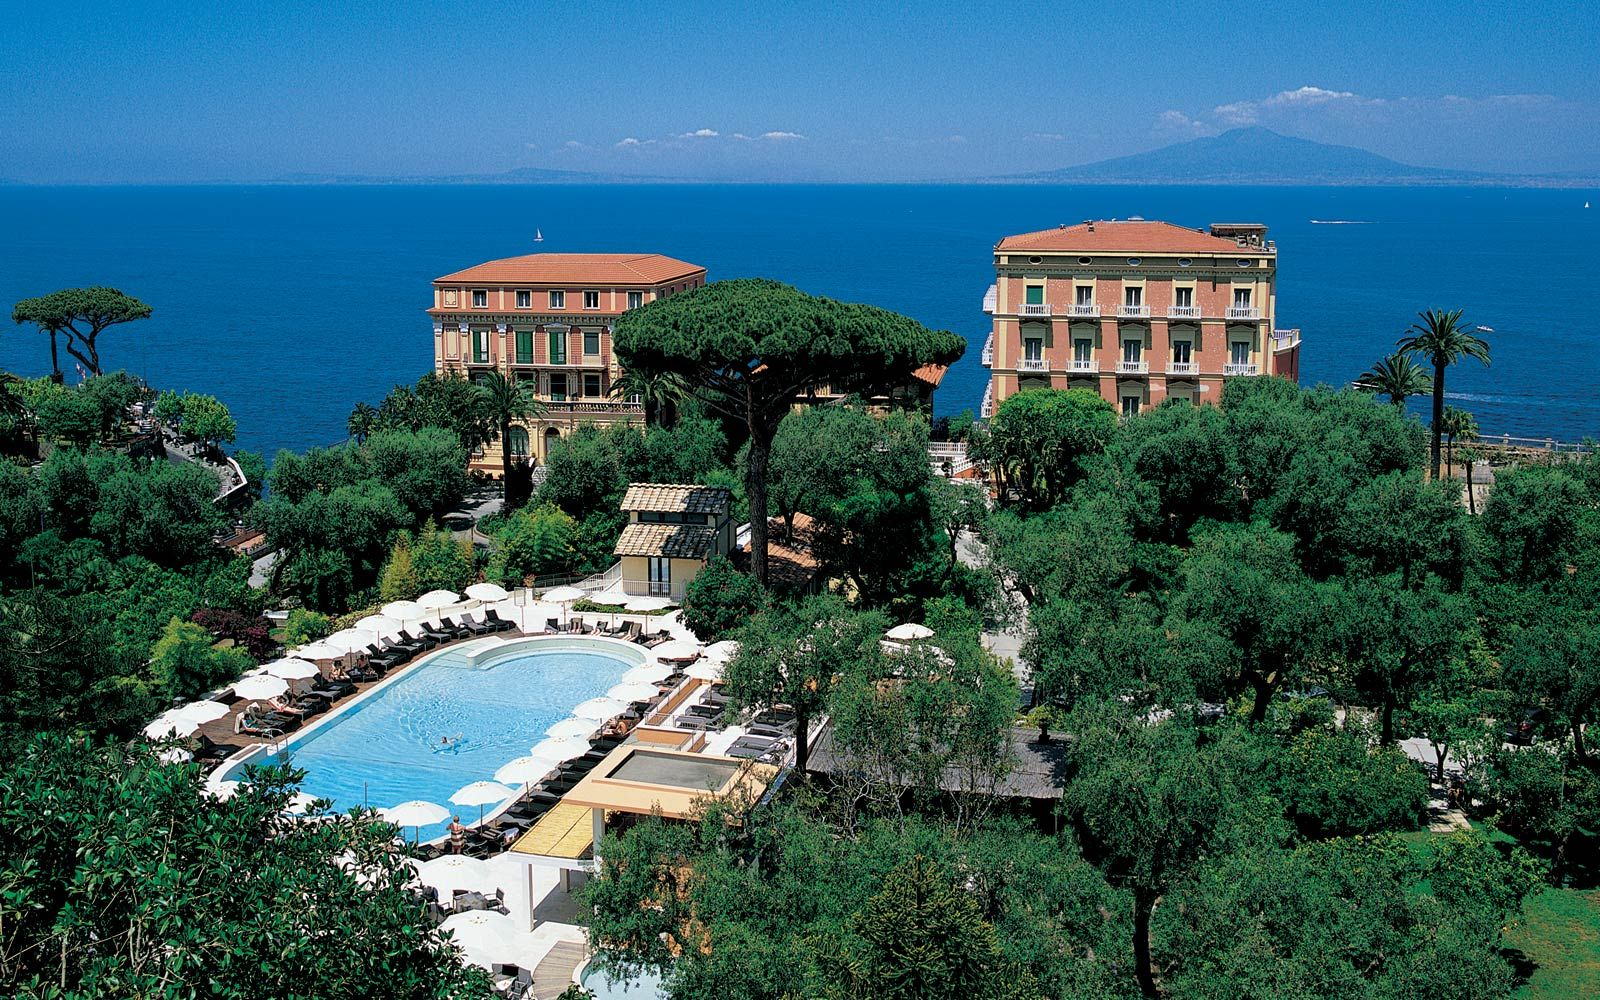 Grand Hotel Excelsior - Sorrento